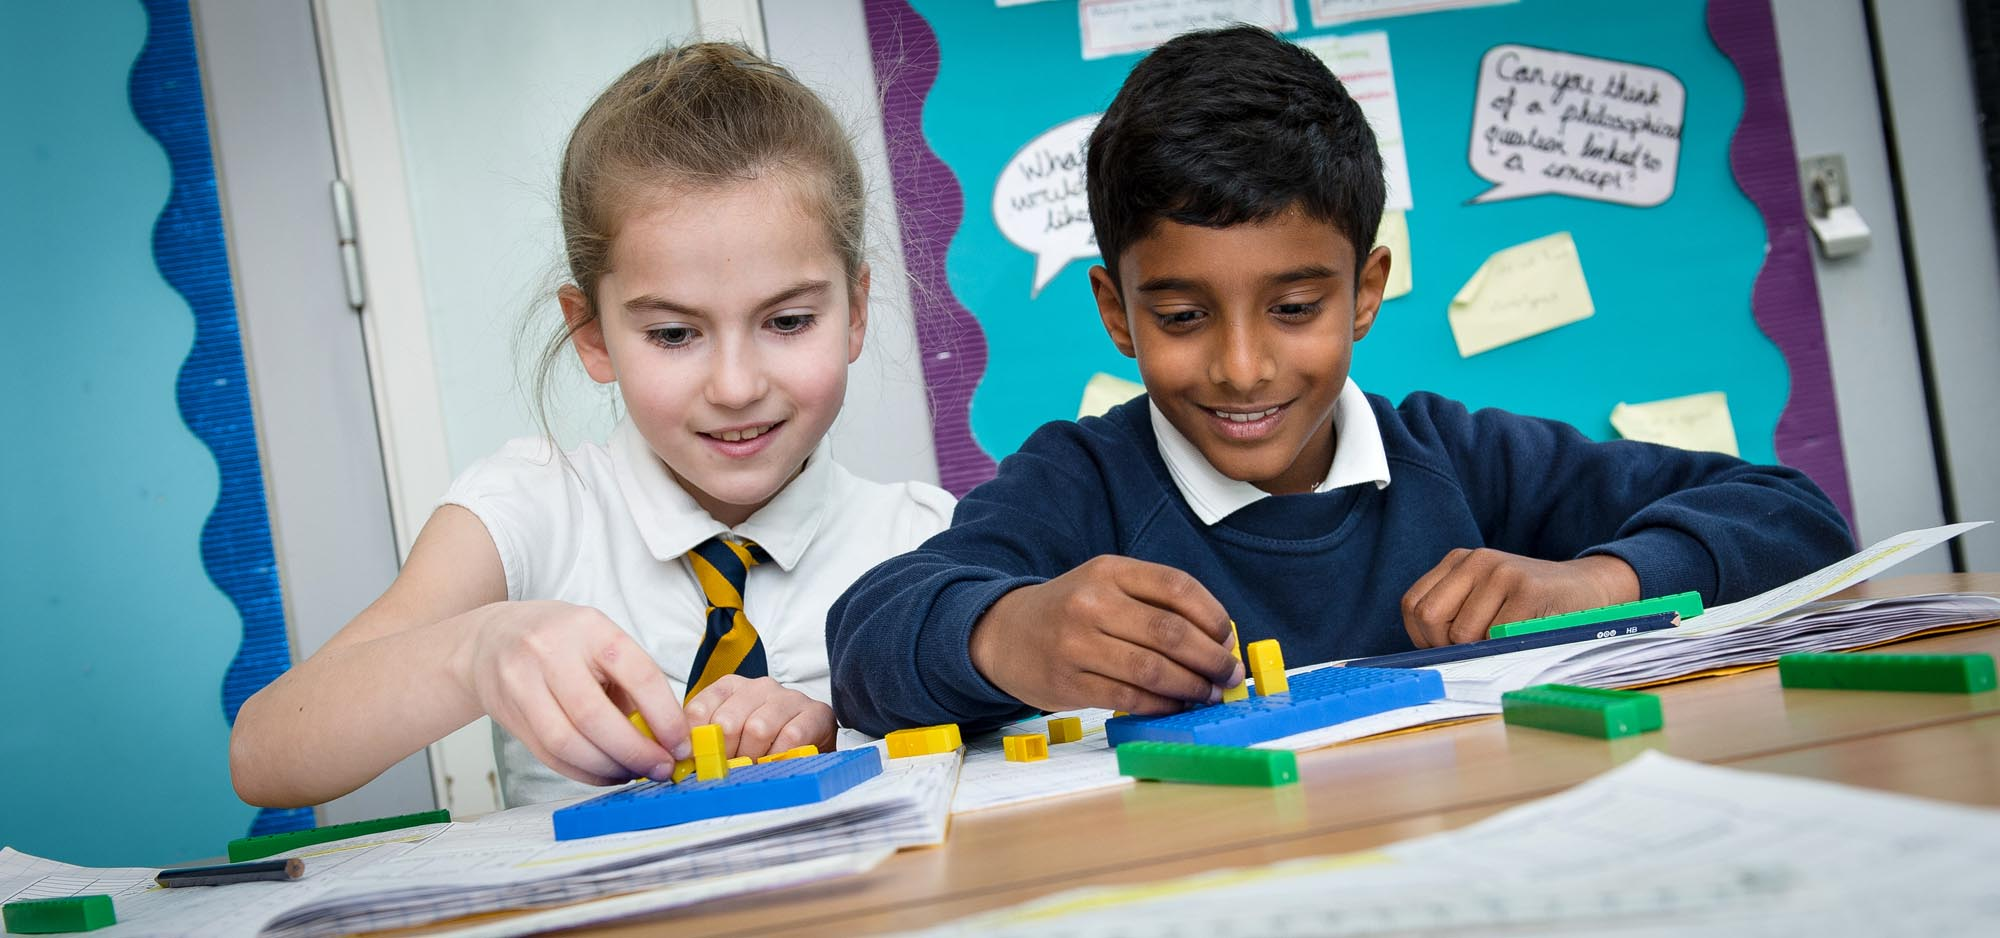 Boy and girl learning with Lego bricks